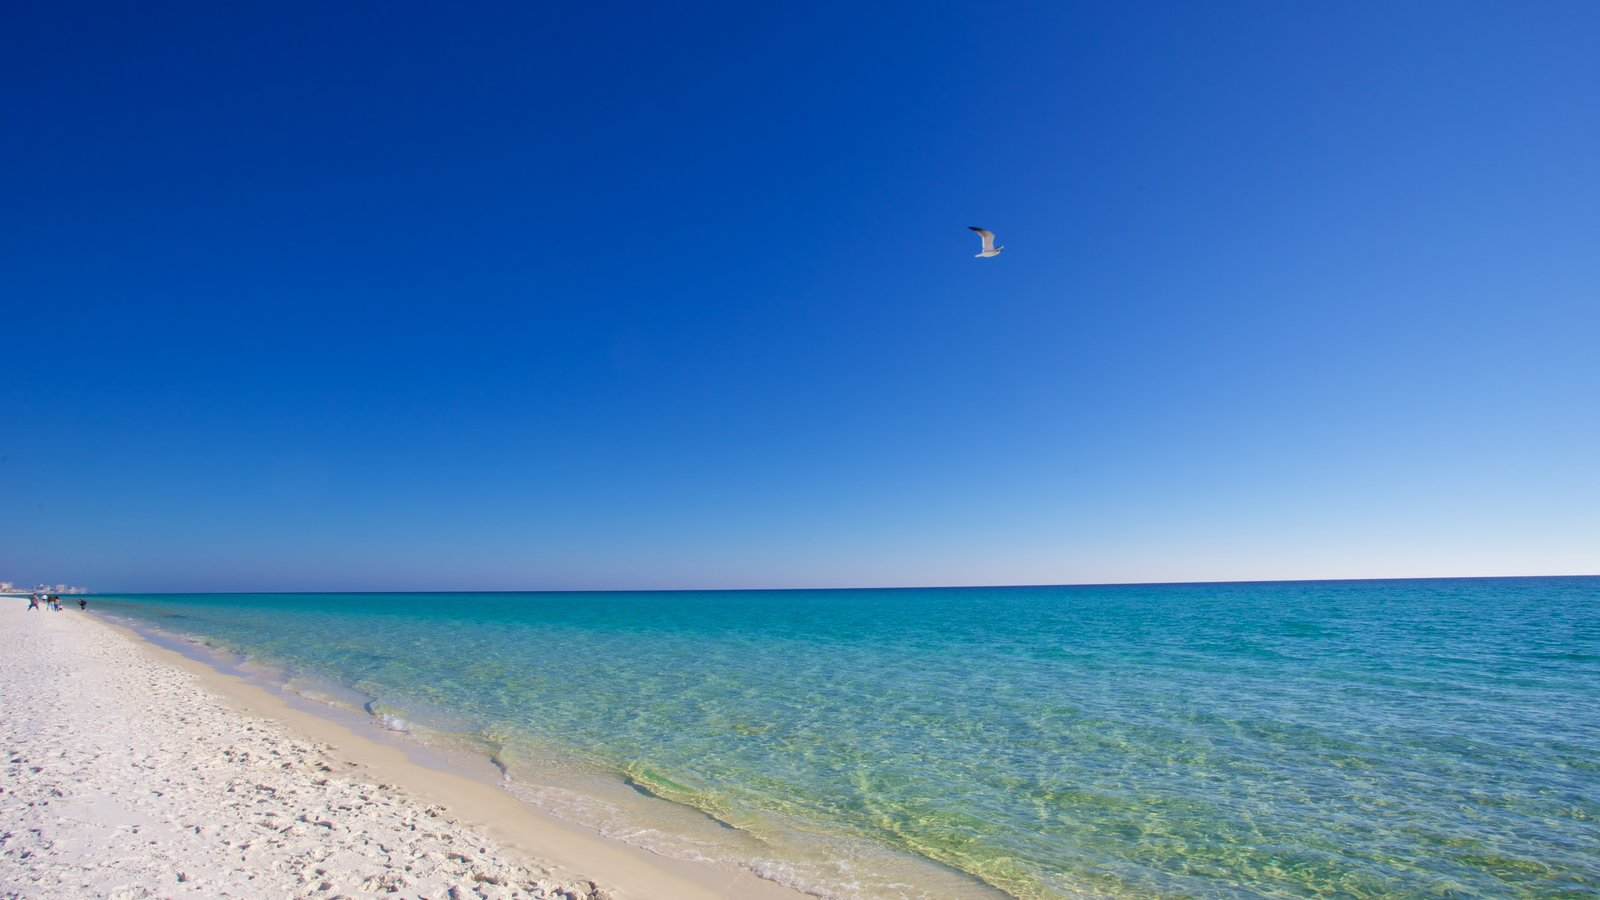 singles in fort walton beach Zillow has 132 homes for sale in fort walton beach fl  by analyzing information on thousands of single family homes for sale in fort walton beach,.